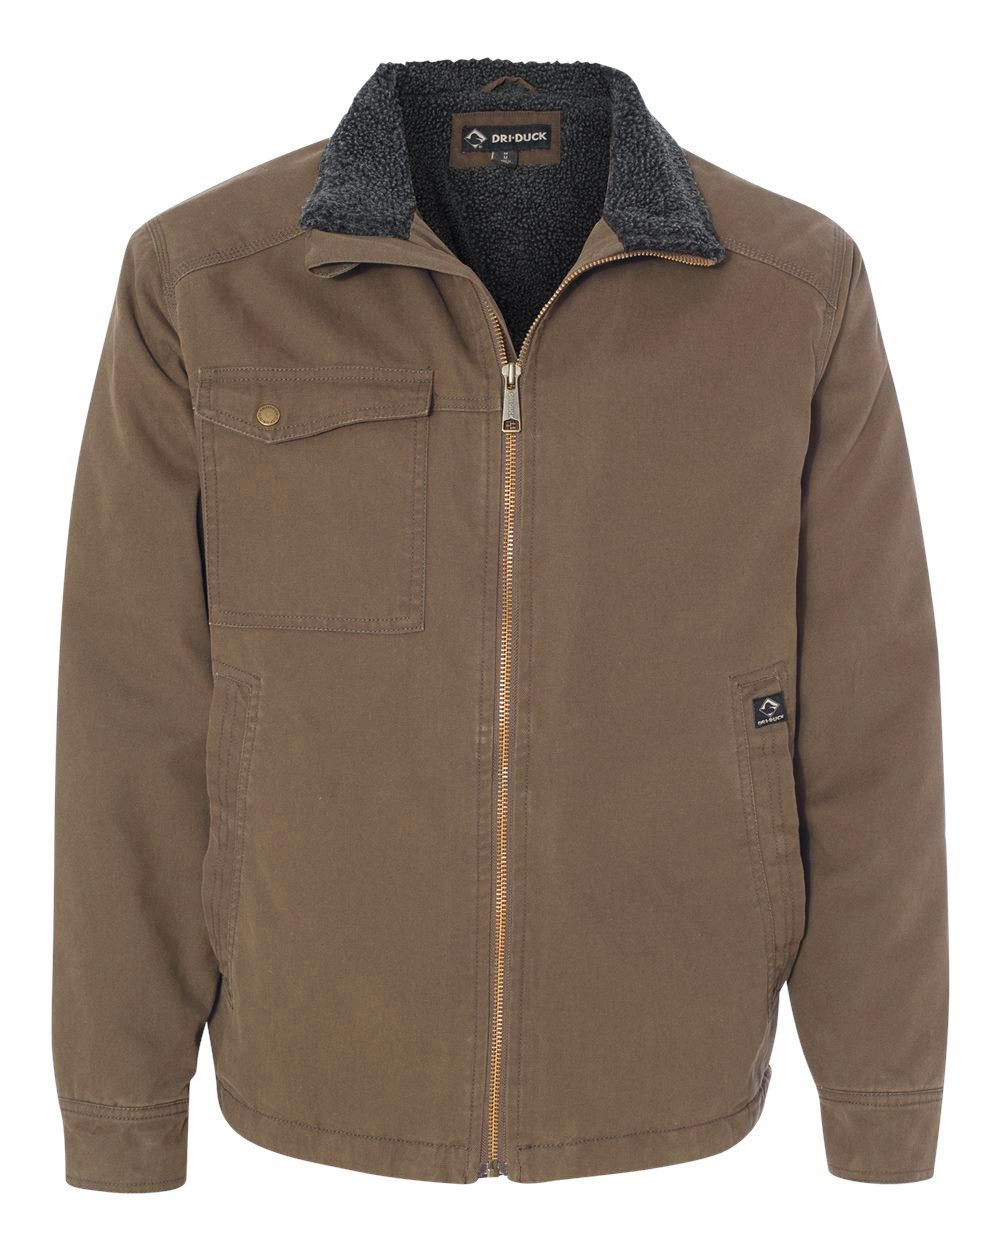 Dri Duck Endeavor Canyon Cloth Canvas Jacket with Sherpa Lining